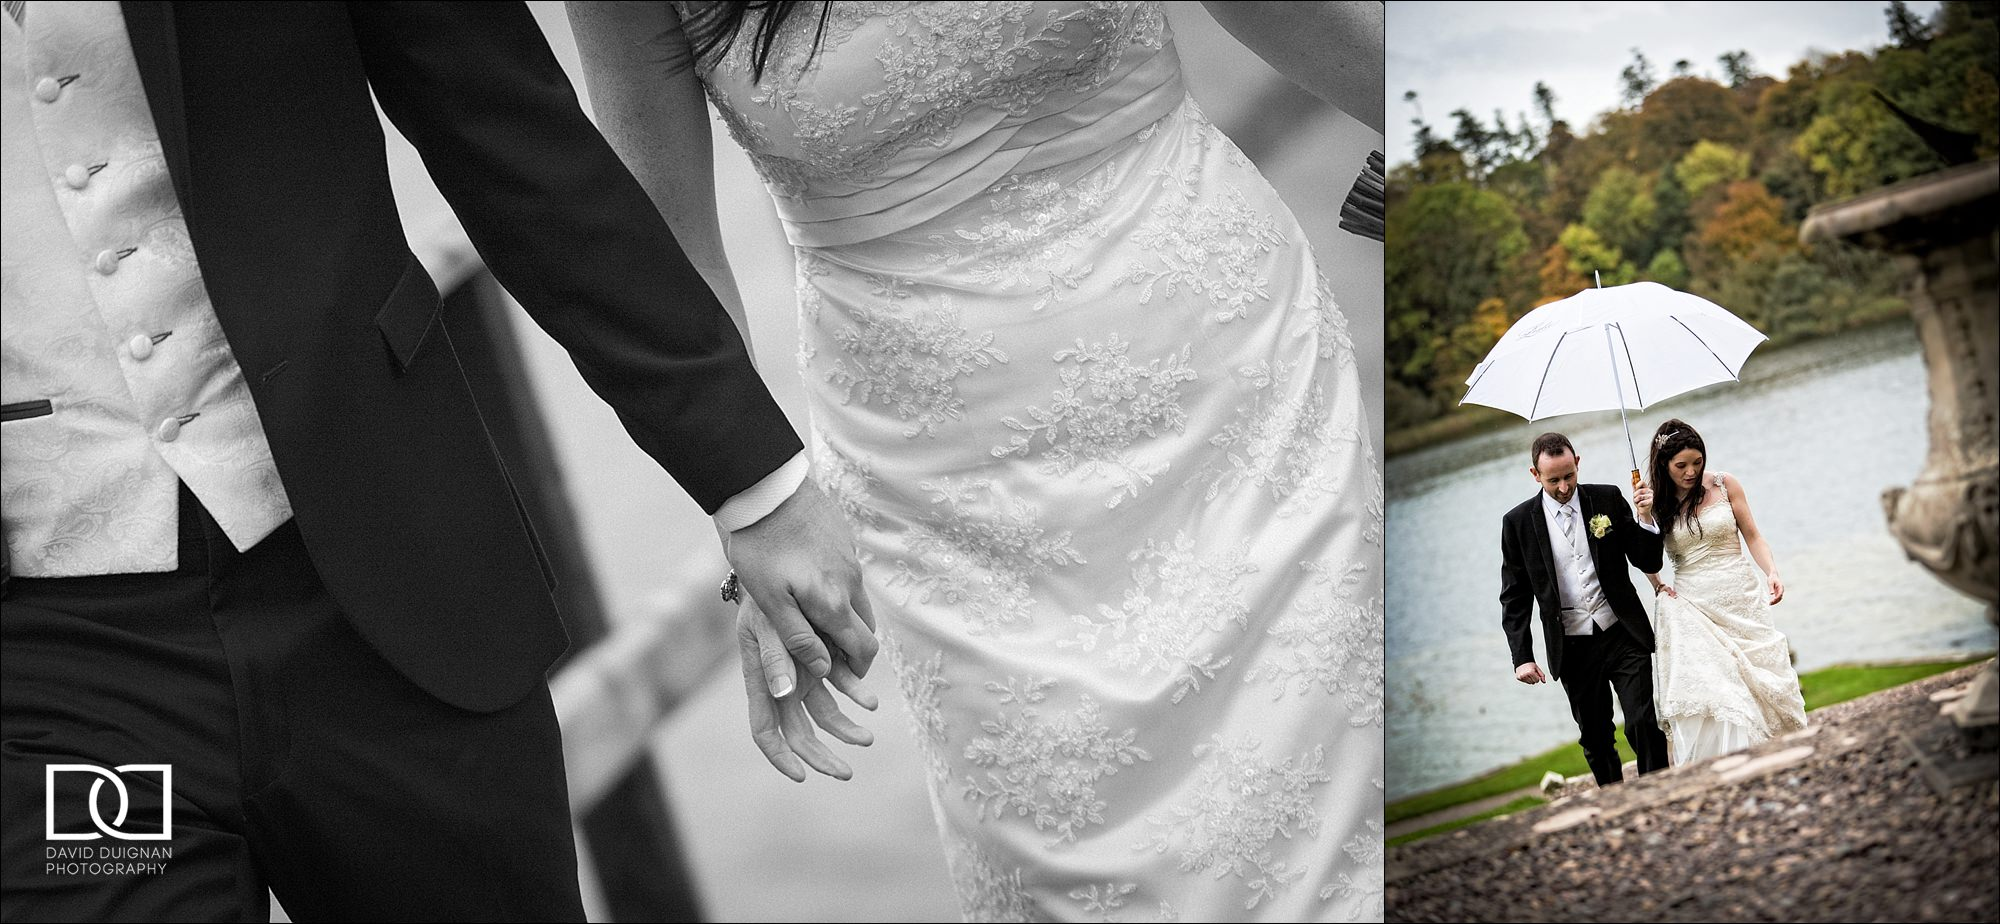 dublin wedding photographer david duignan photography castle leslie weddings Ireland 0027